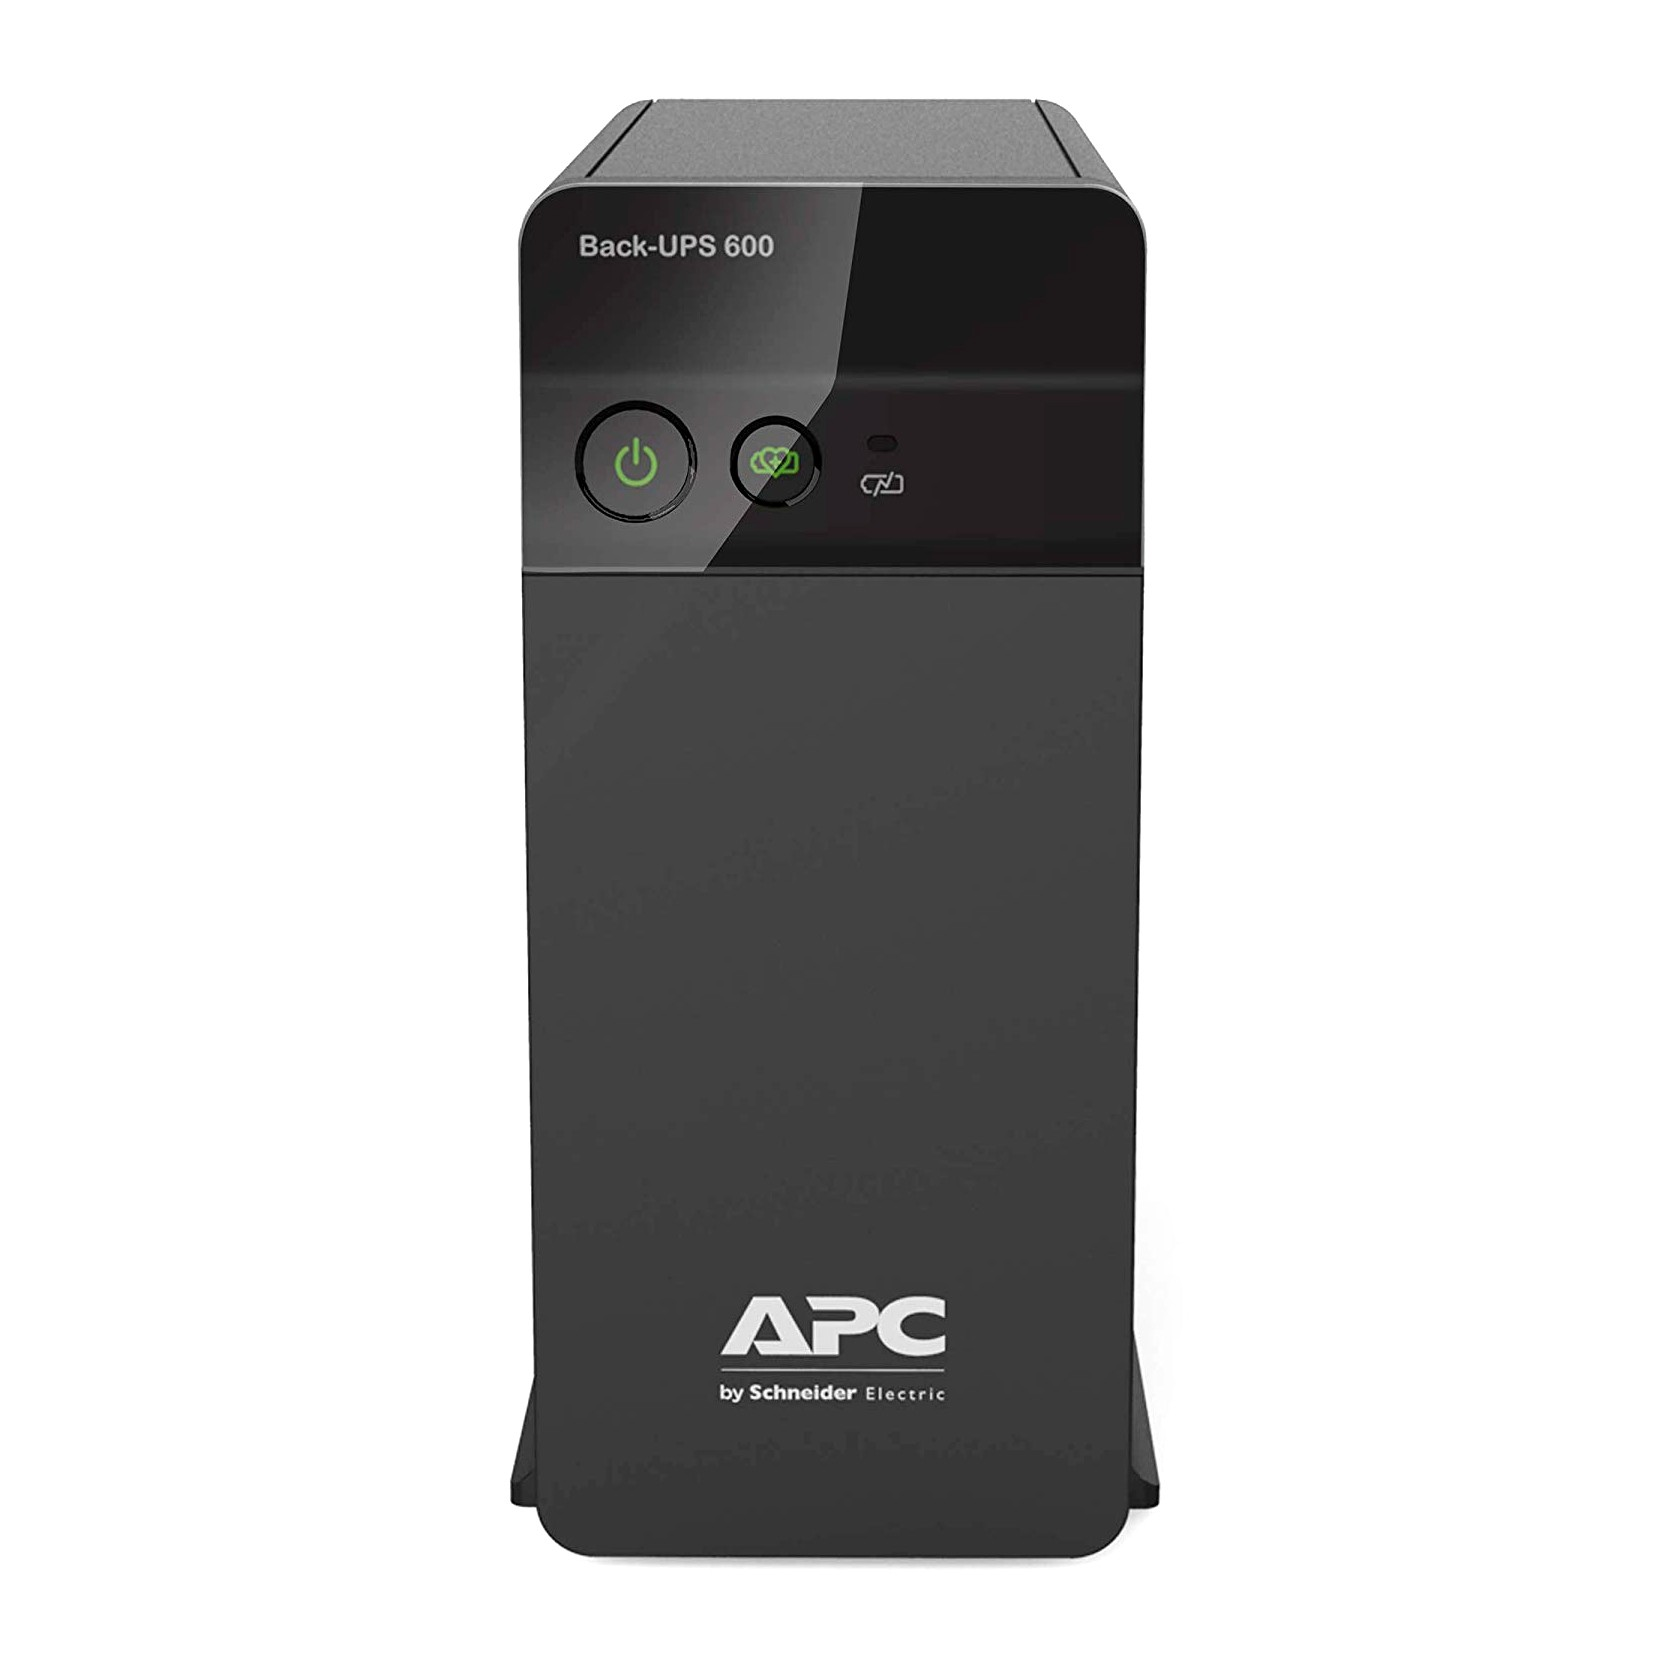 APC BX600C-IN 600VA / 360W, 230V, UPS System, an Ideal Power Backup & Protection for Office, Desktop PC & Home Electronics